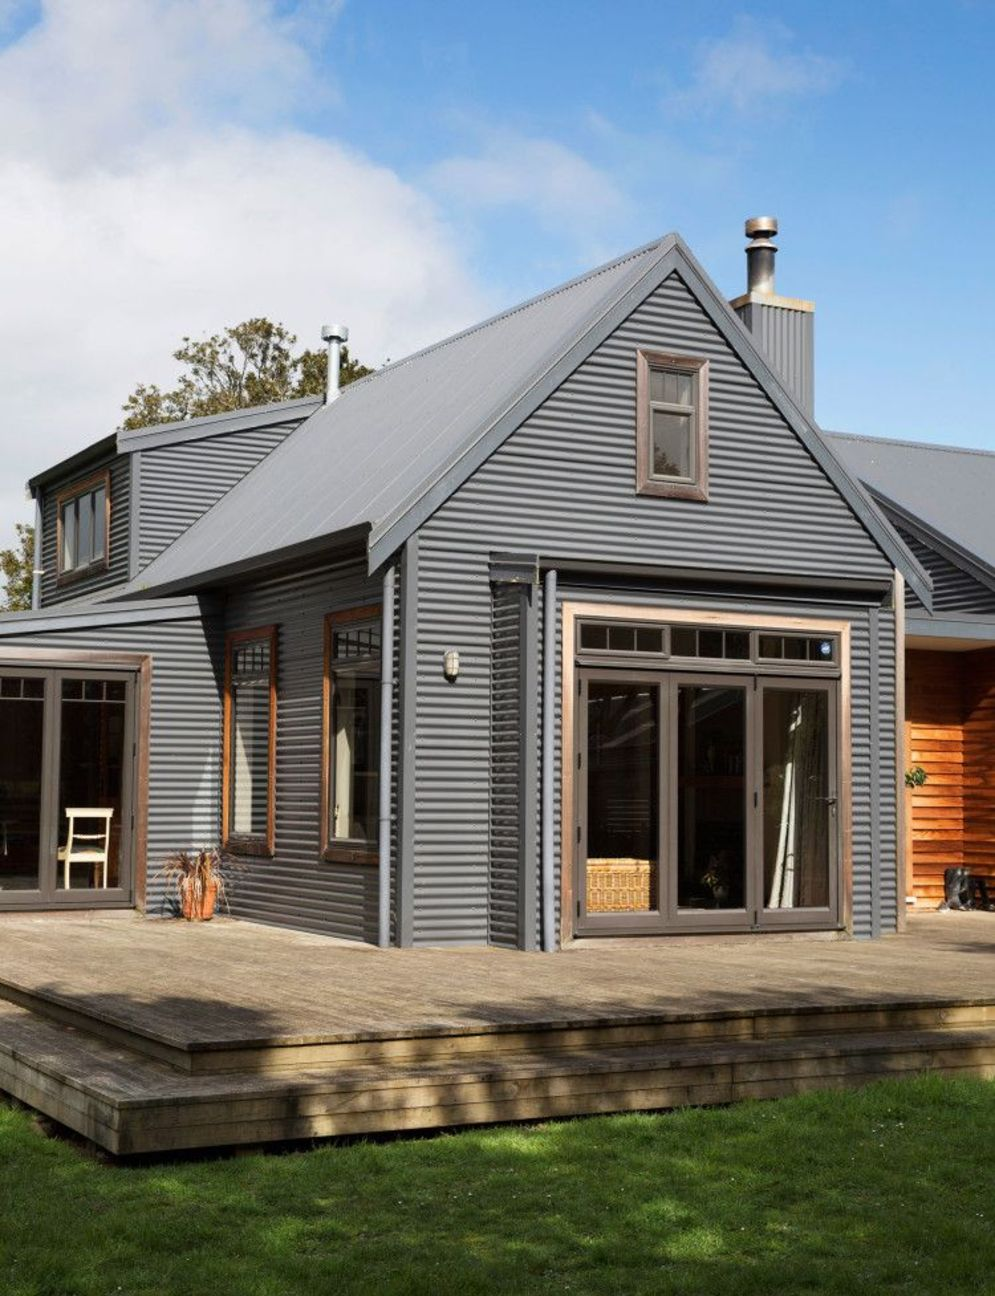 Modern house with new farmhouse exterior design pulling out country charm and warm welcoming display Image 32